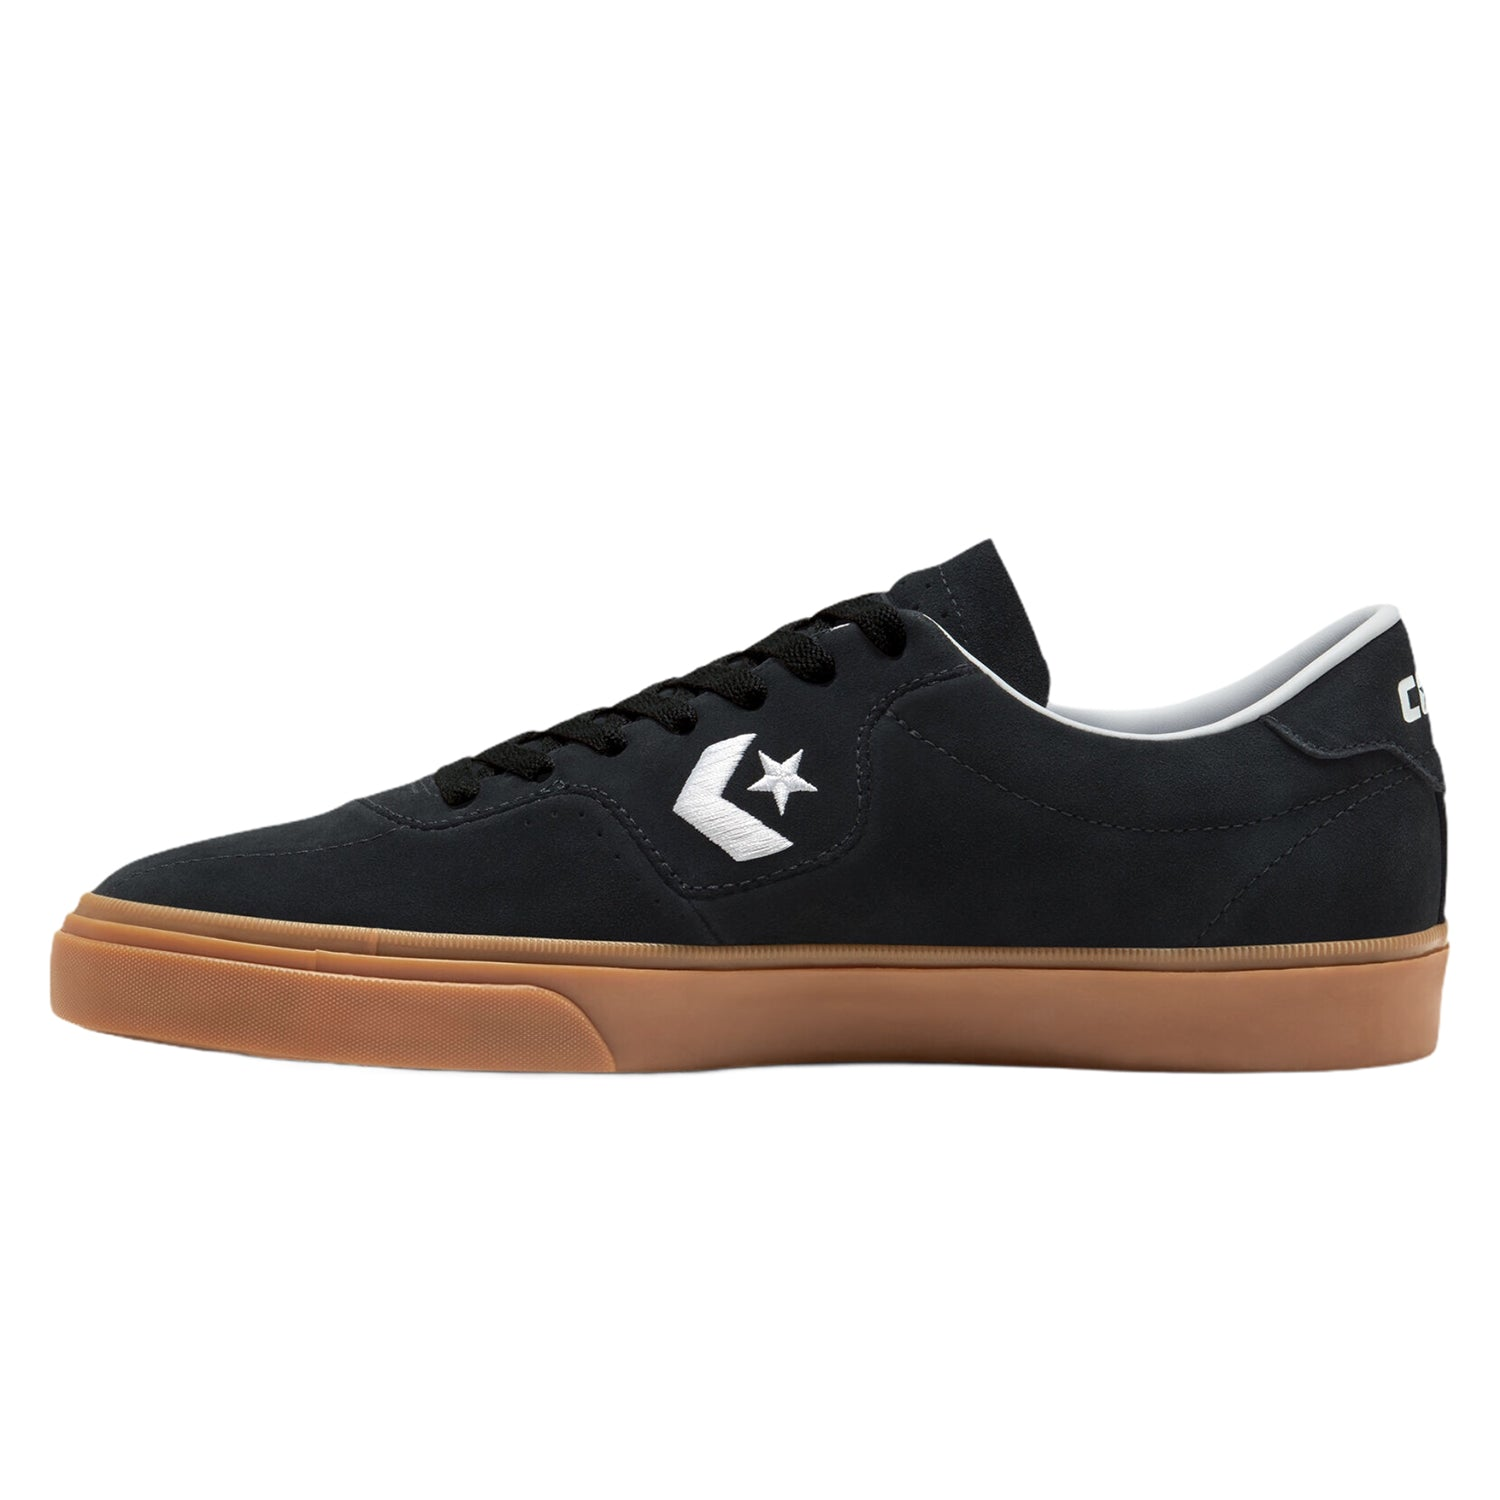 Converse CONS Louie Lopez Pro OX Black/White/Gum